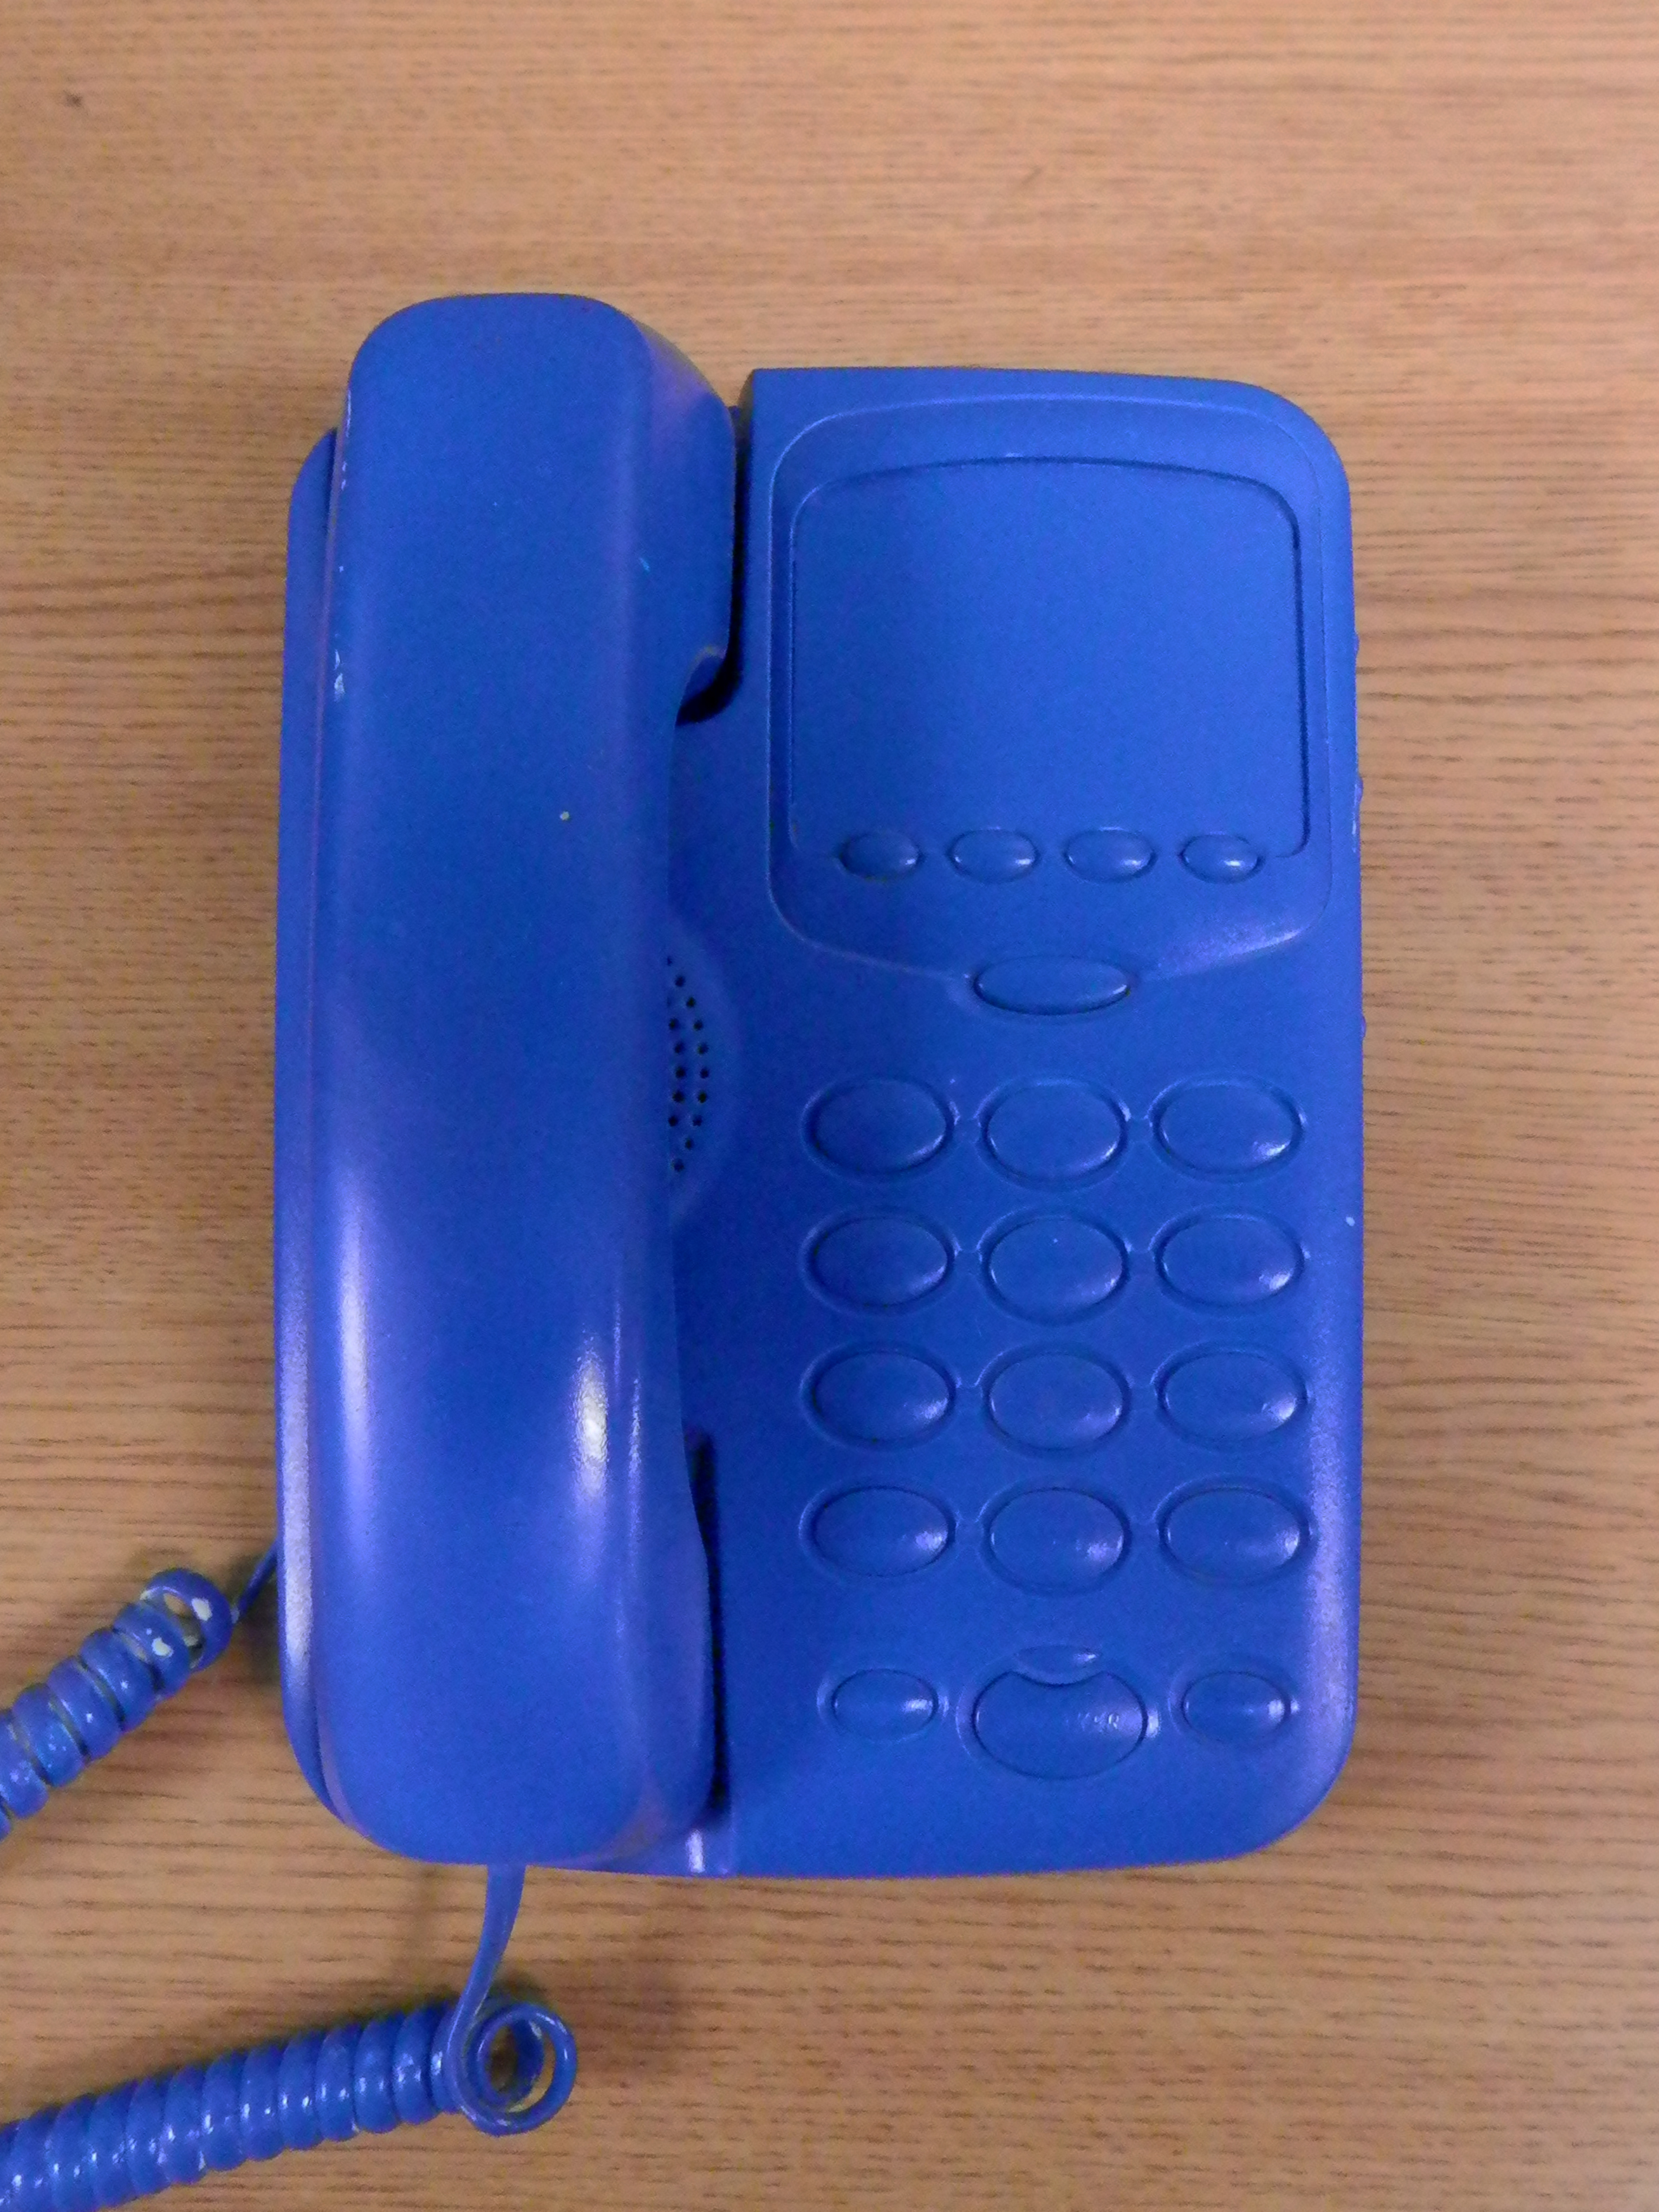 Corded Phone - painted blue